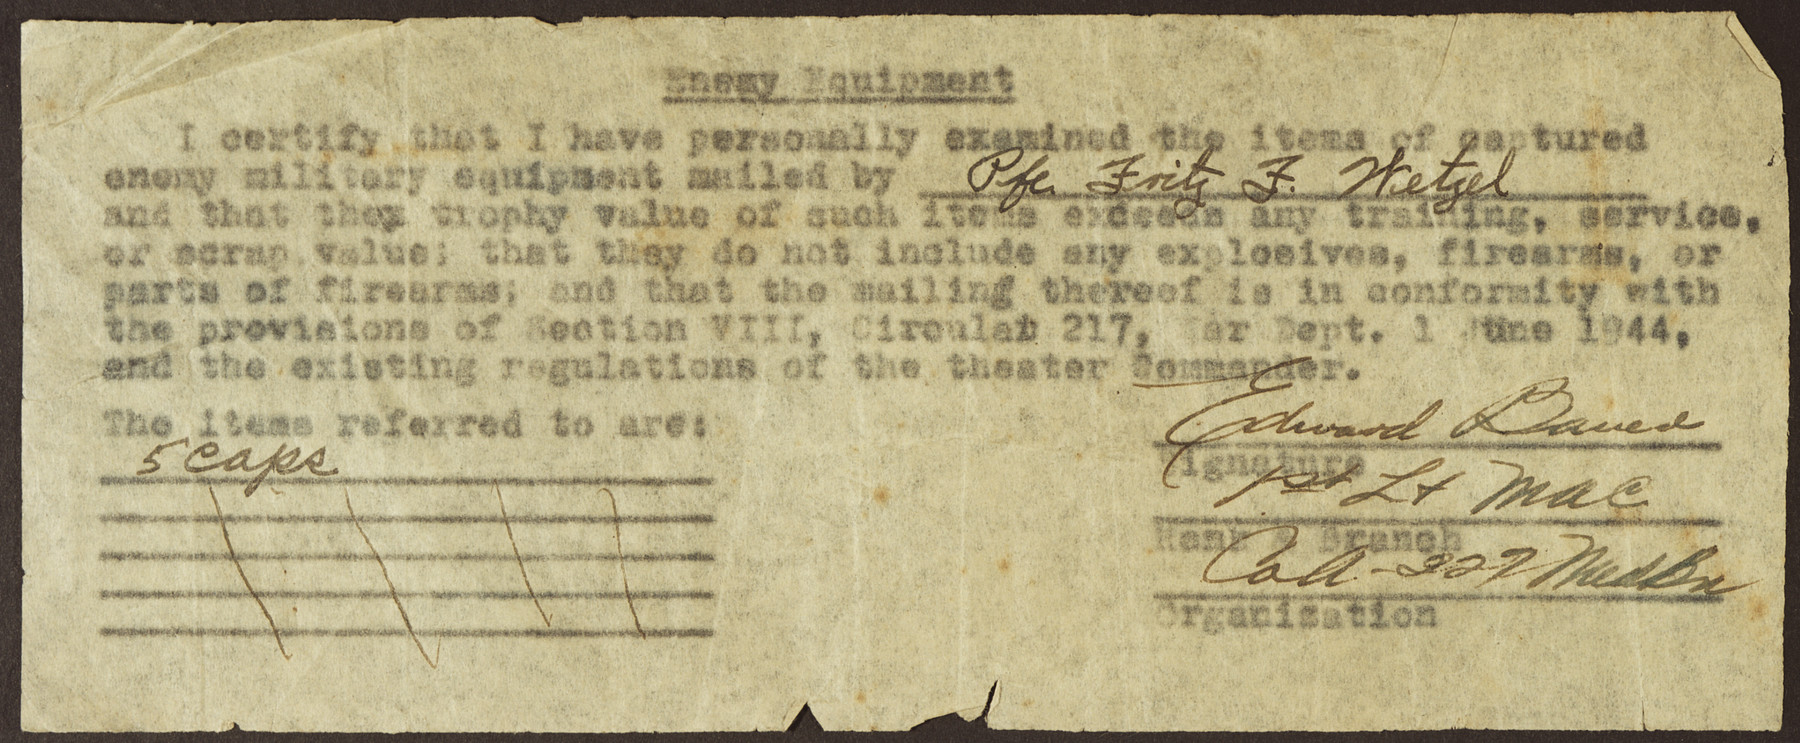 Document certifying that the material being shipped home by Pfc Fritz Wetzel conforms with the provisions of Circular 217 about captured enemy equipment.